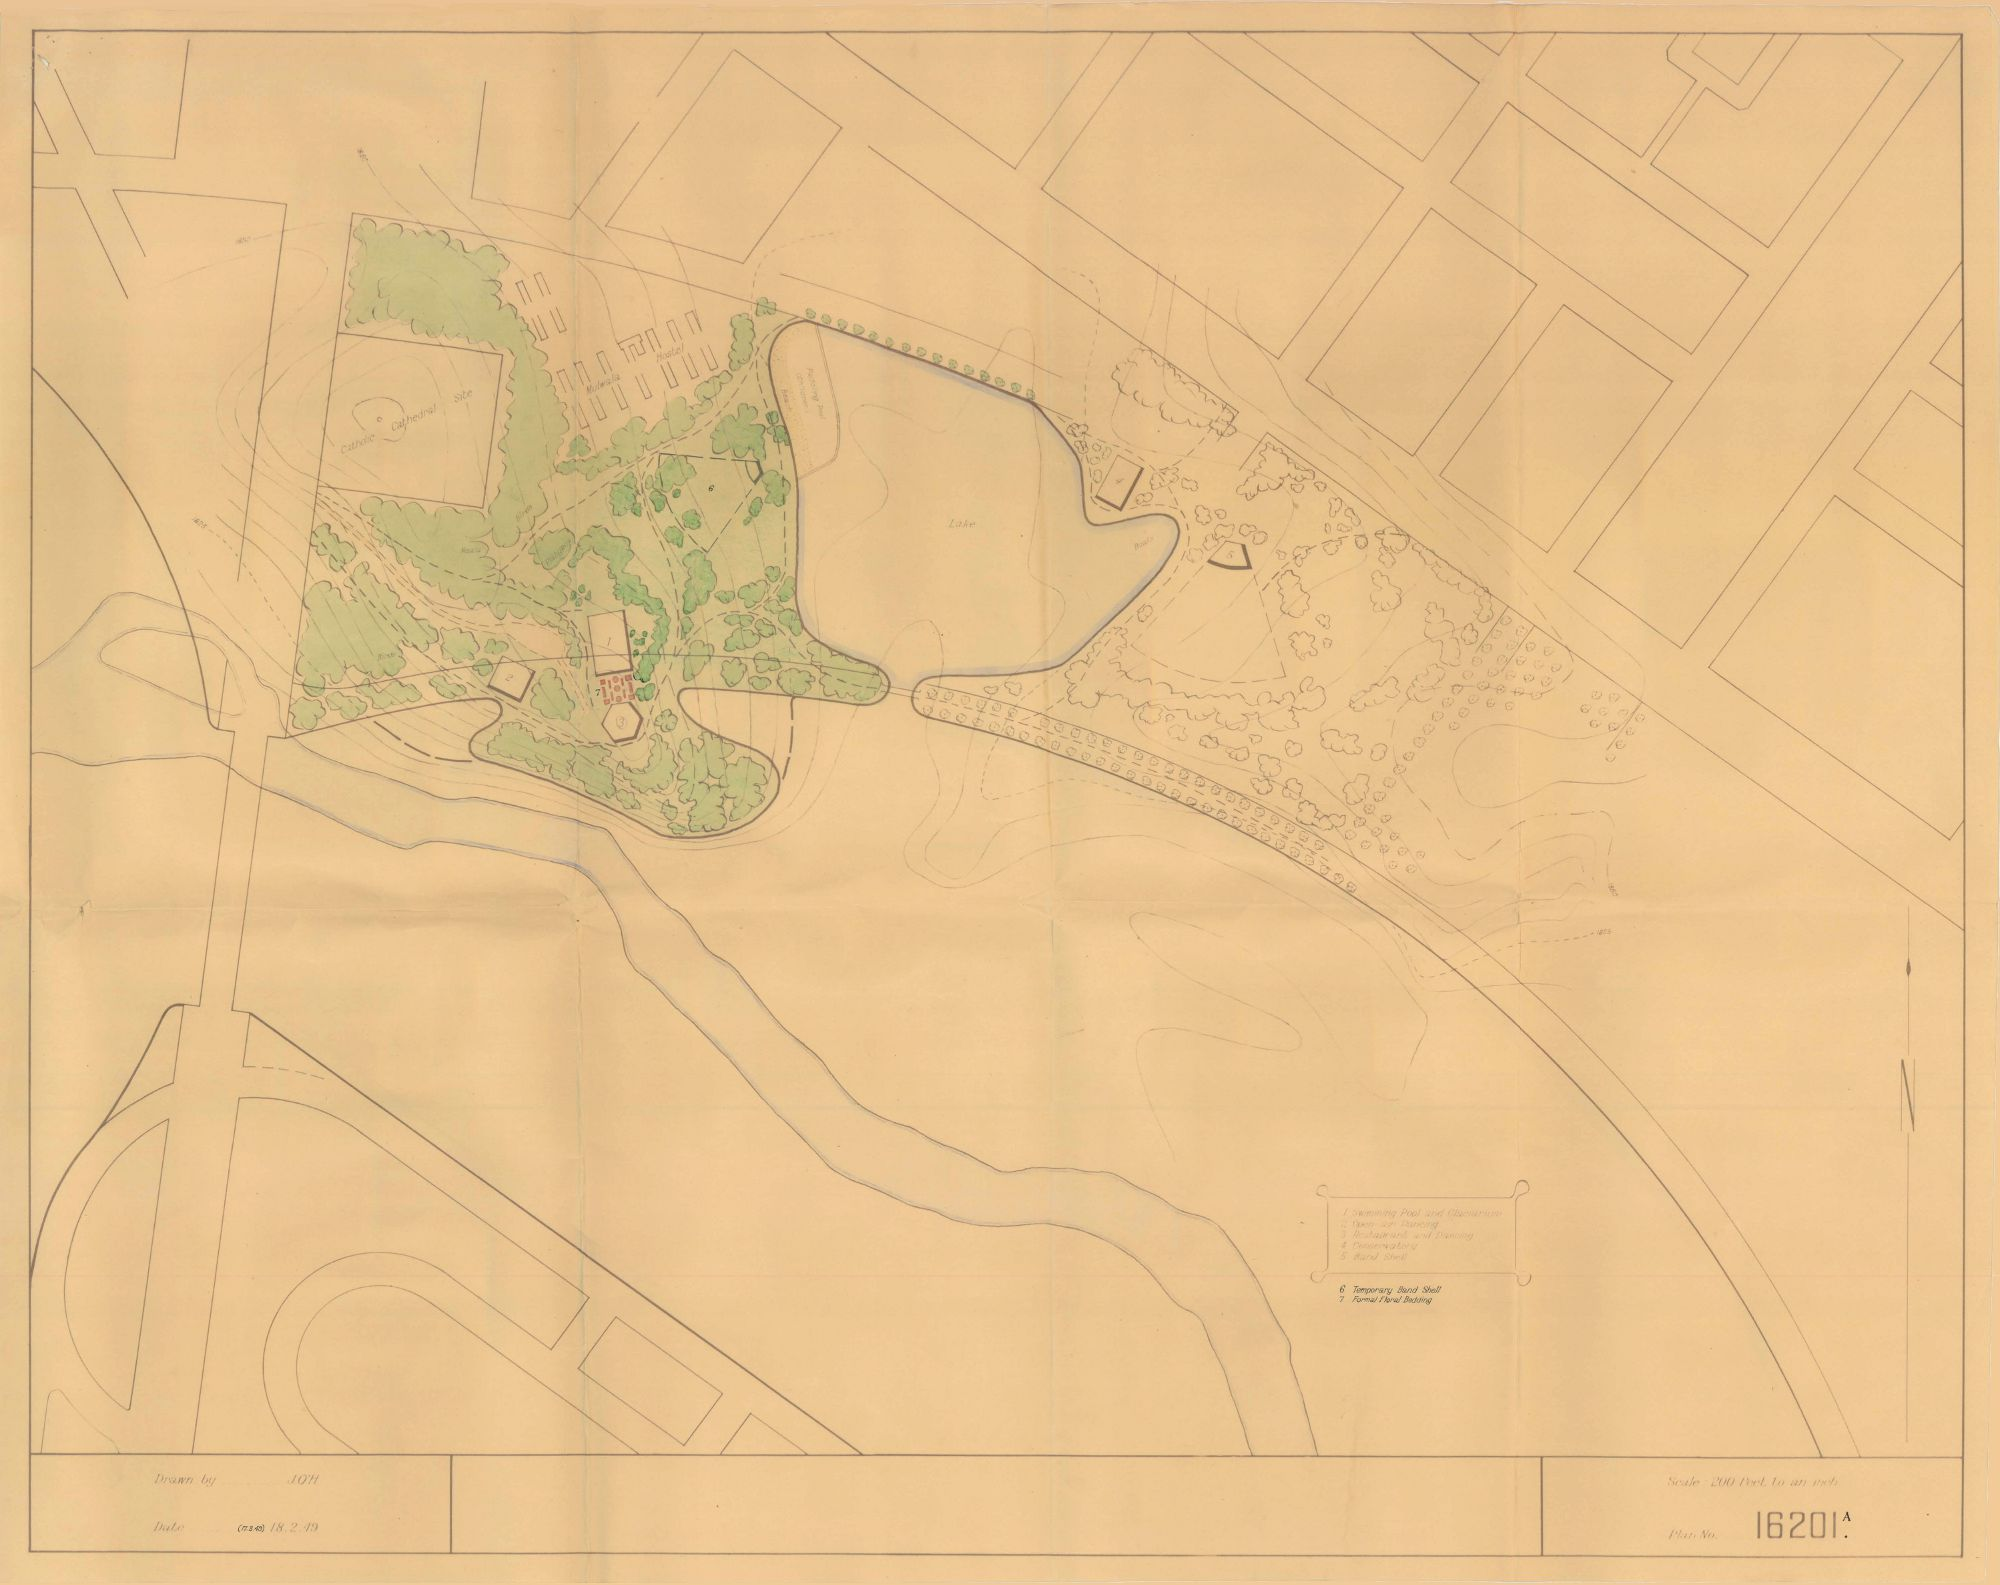 1949 proposal plan for Commonwealth Park 16201A